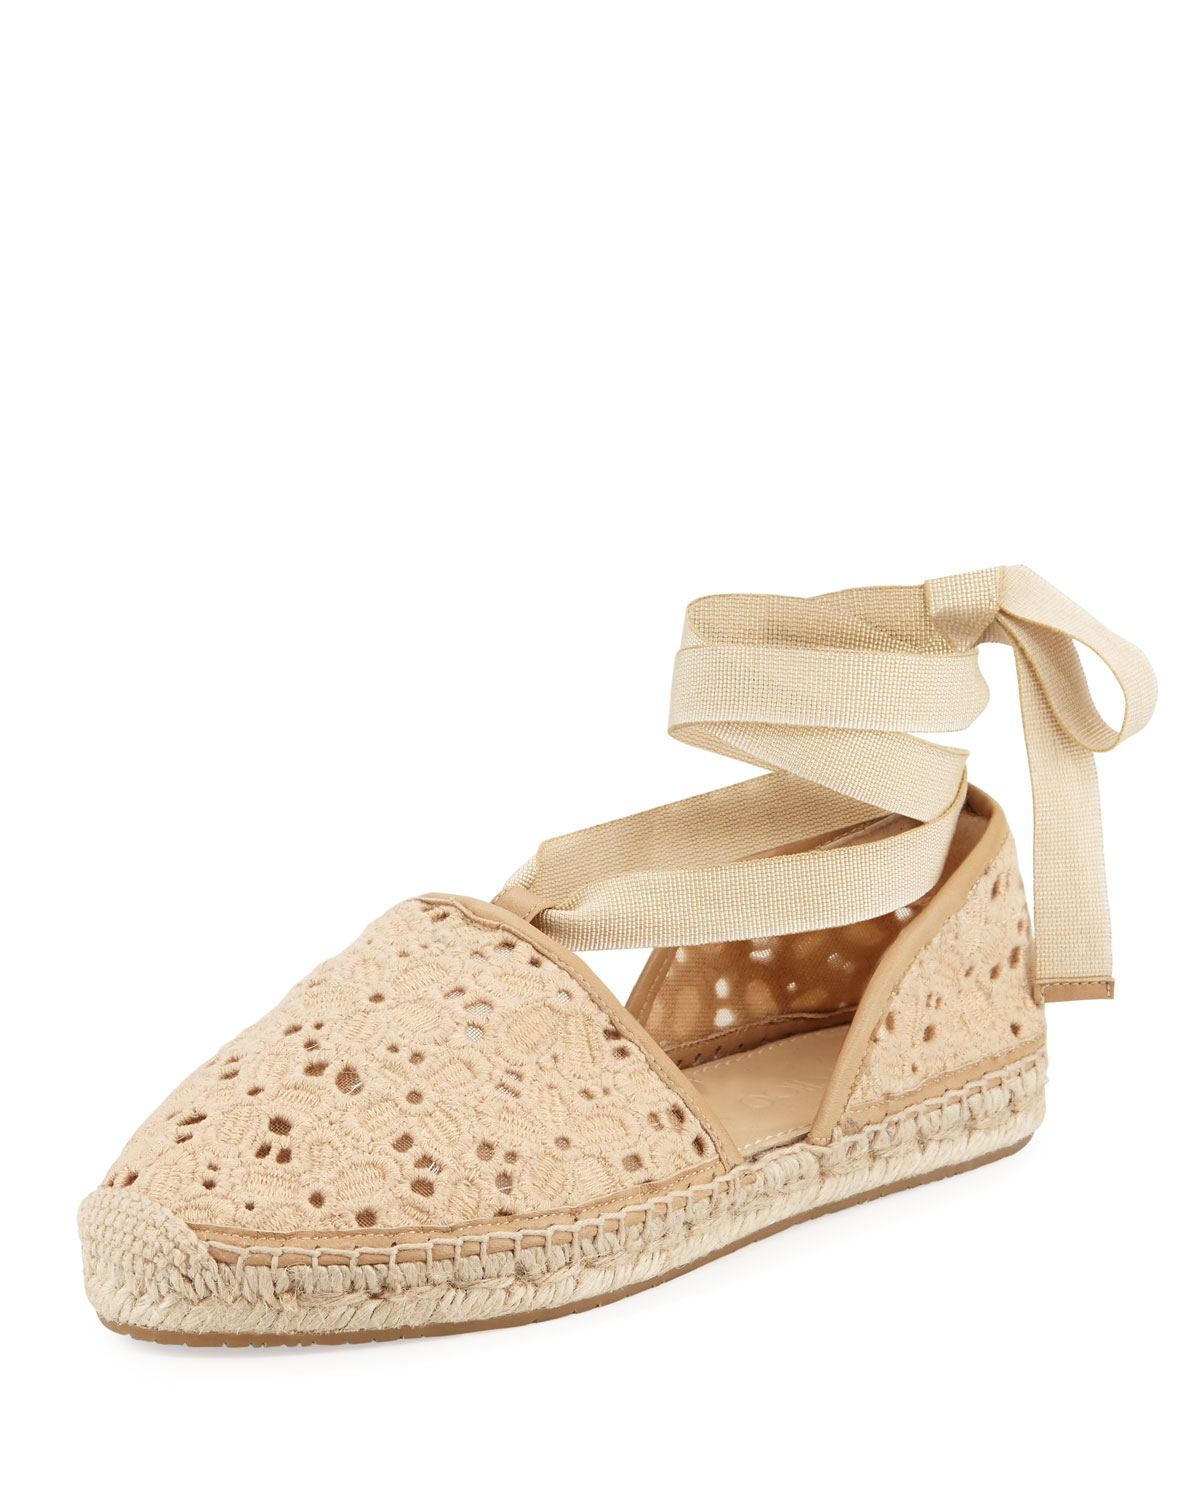 Dolphin Macrame d'Orsay Espadrille